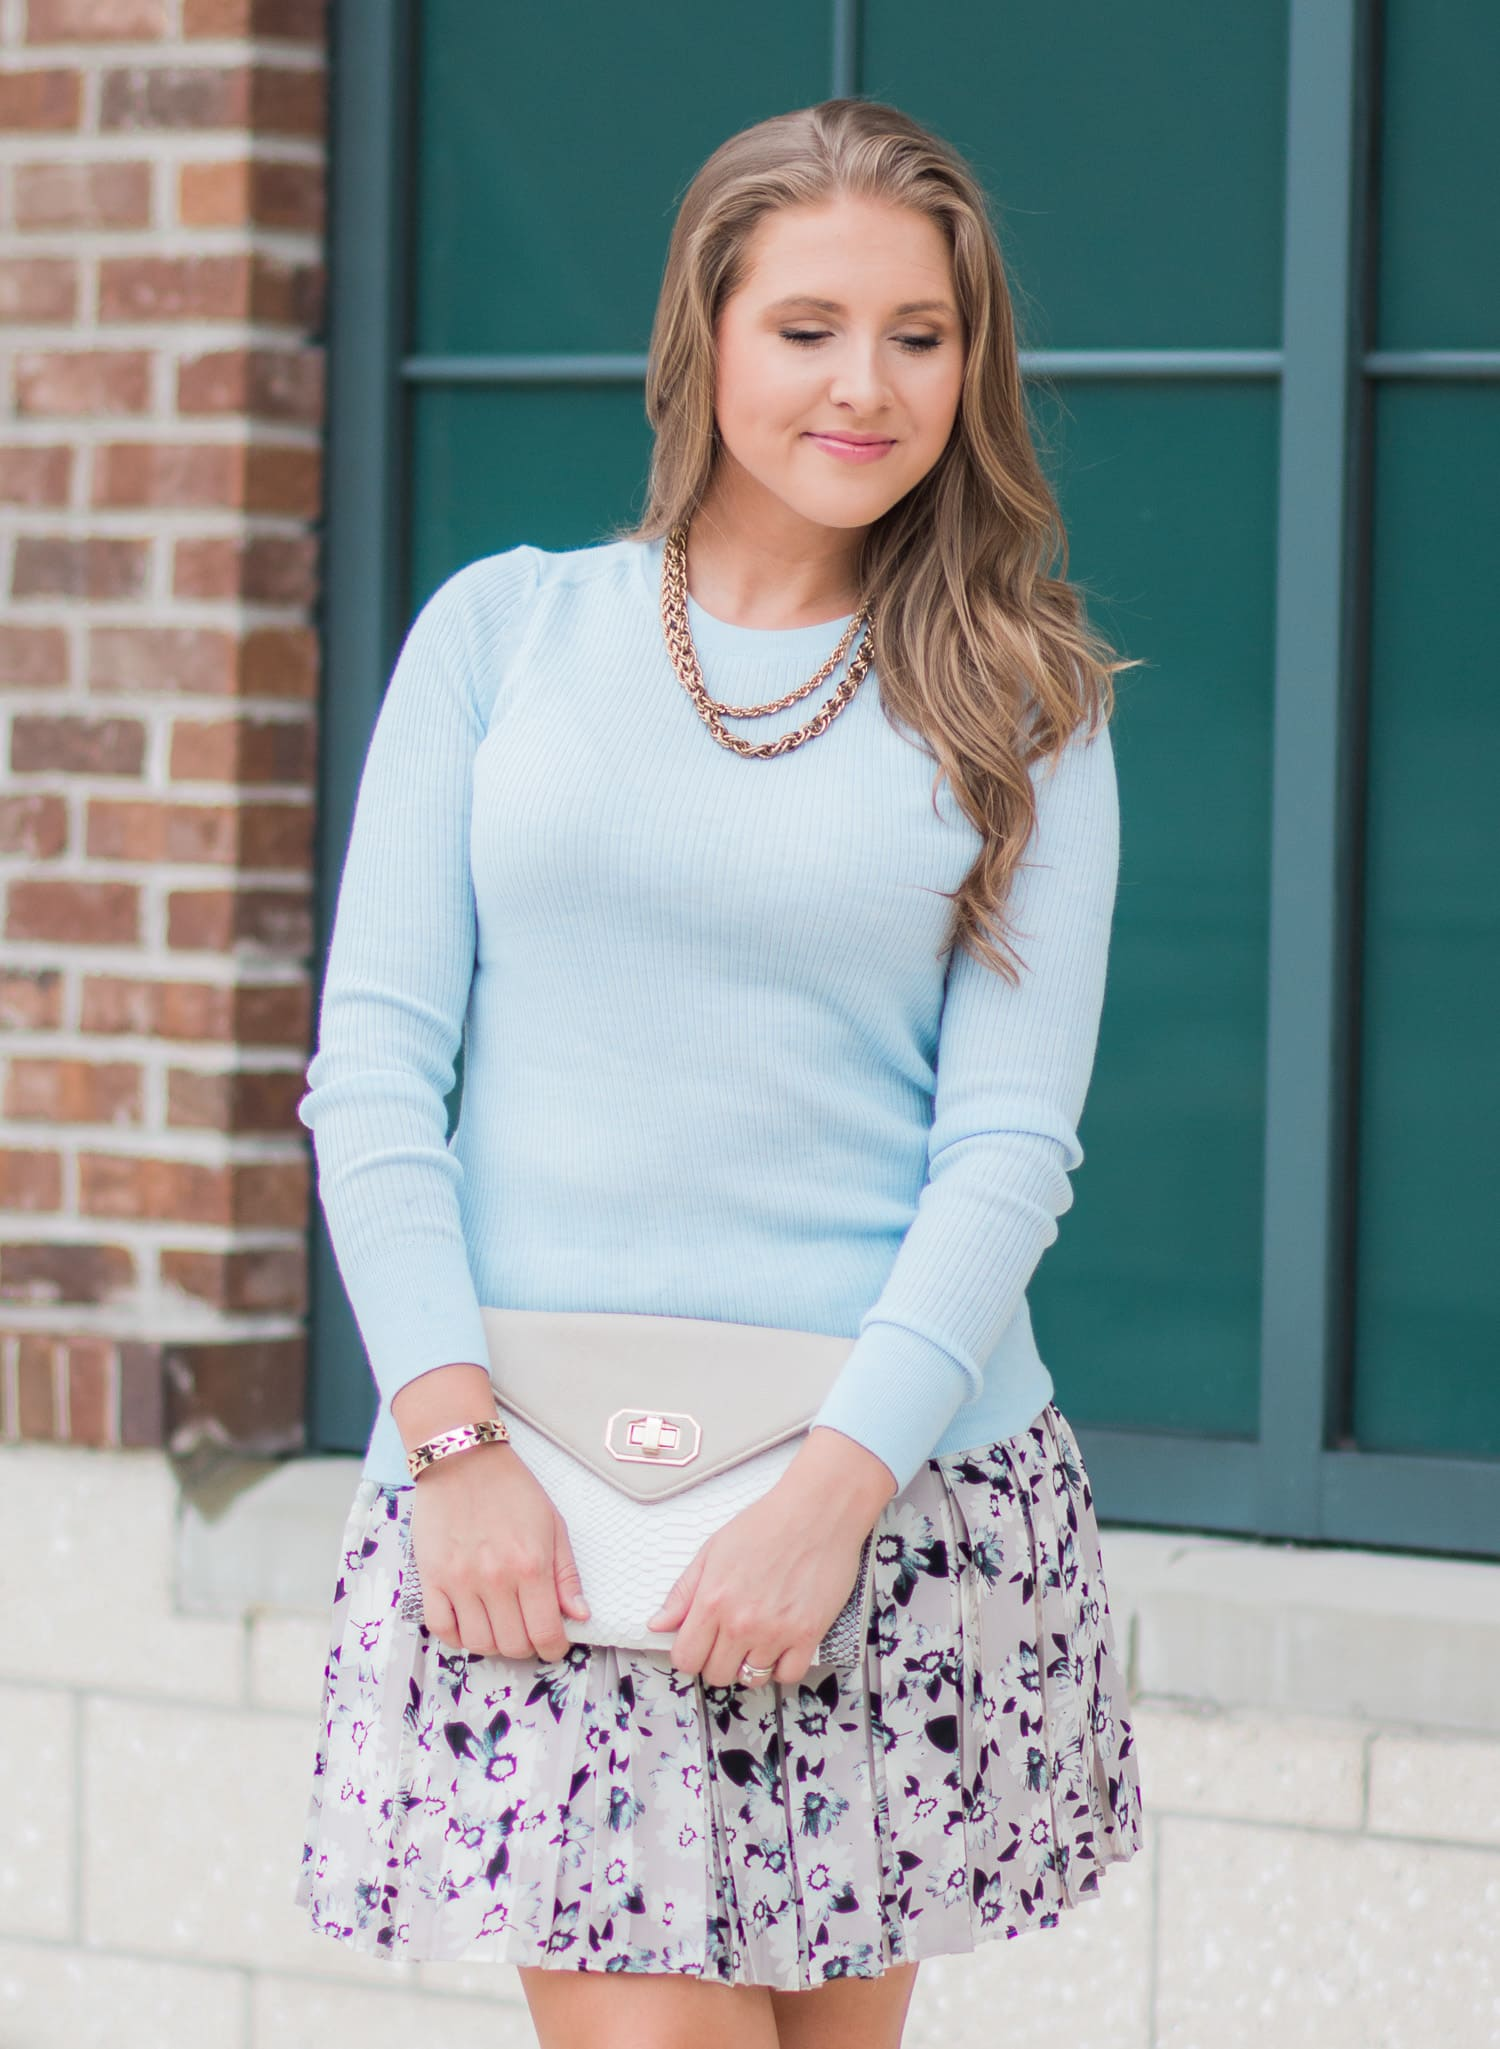 Banana Republic pleated floral skirt, ribbed baby blue sweater, and nude bow heels. Such a perfect transitional summer to fall outfit idea. Click through to see the full outfit from blogger Ashley Brooke Nicholas.